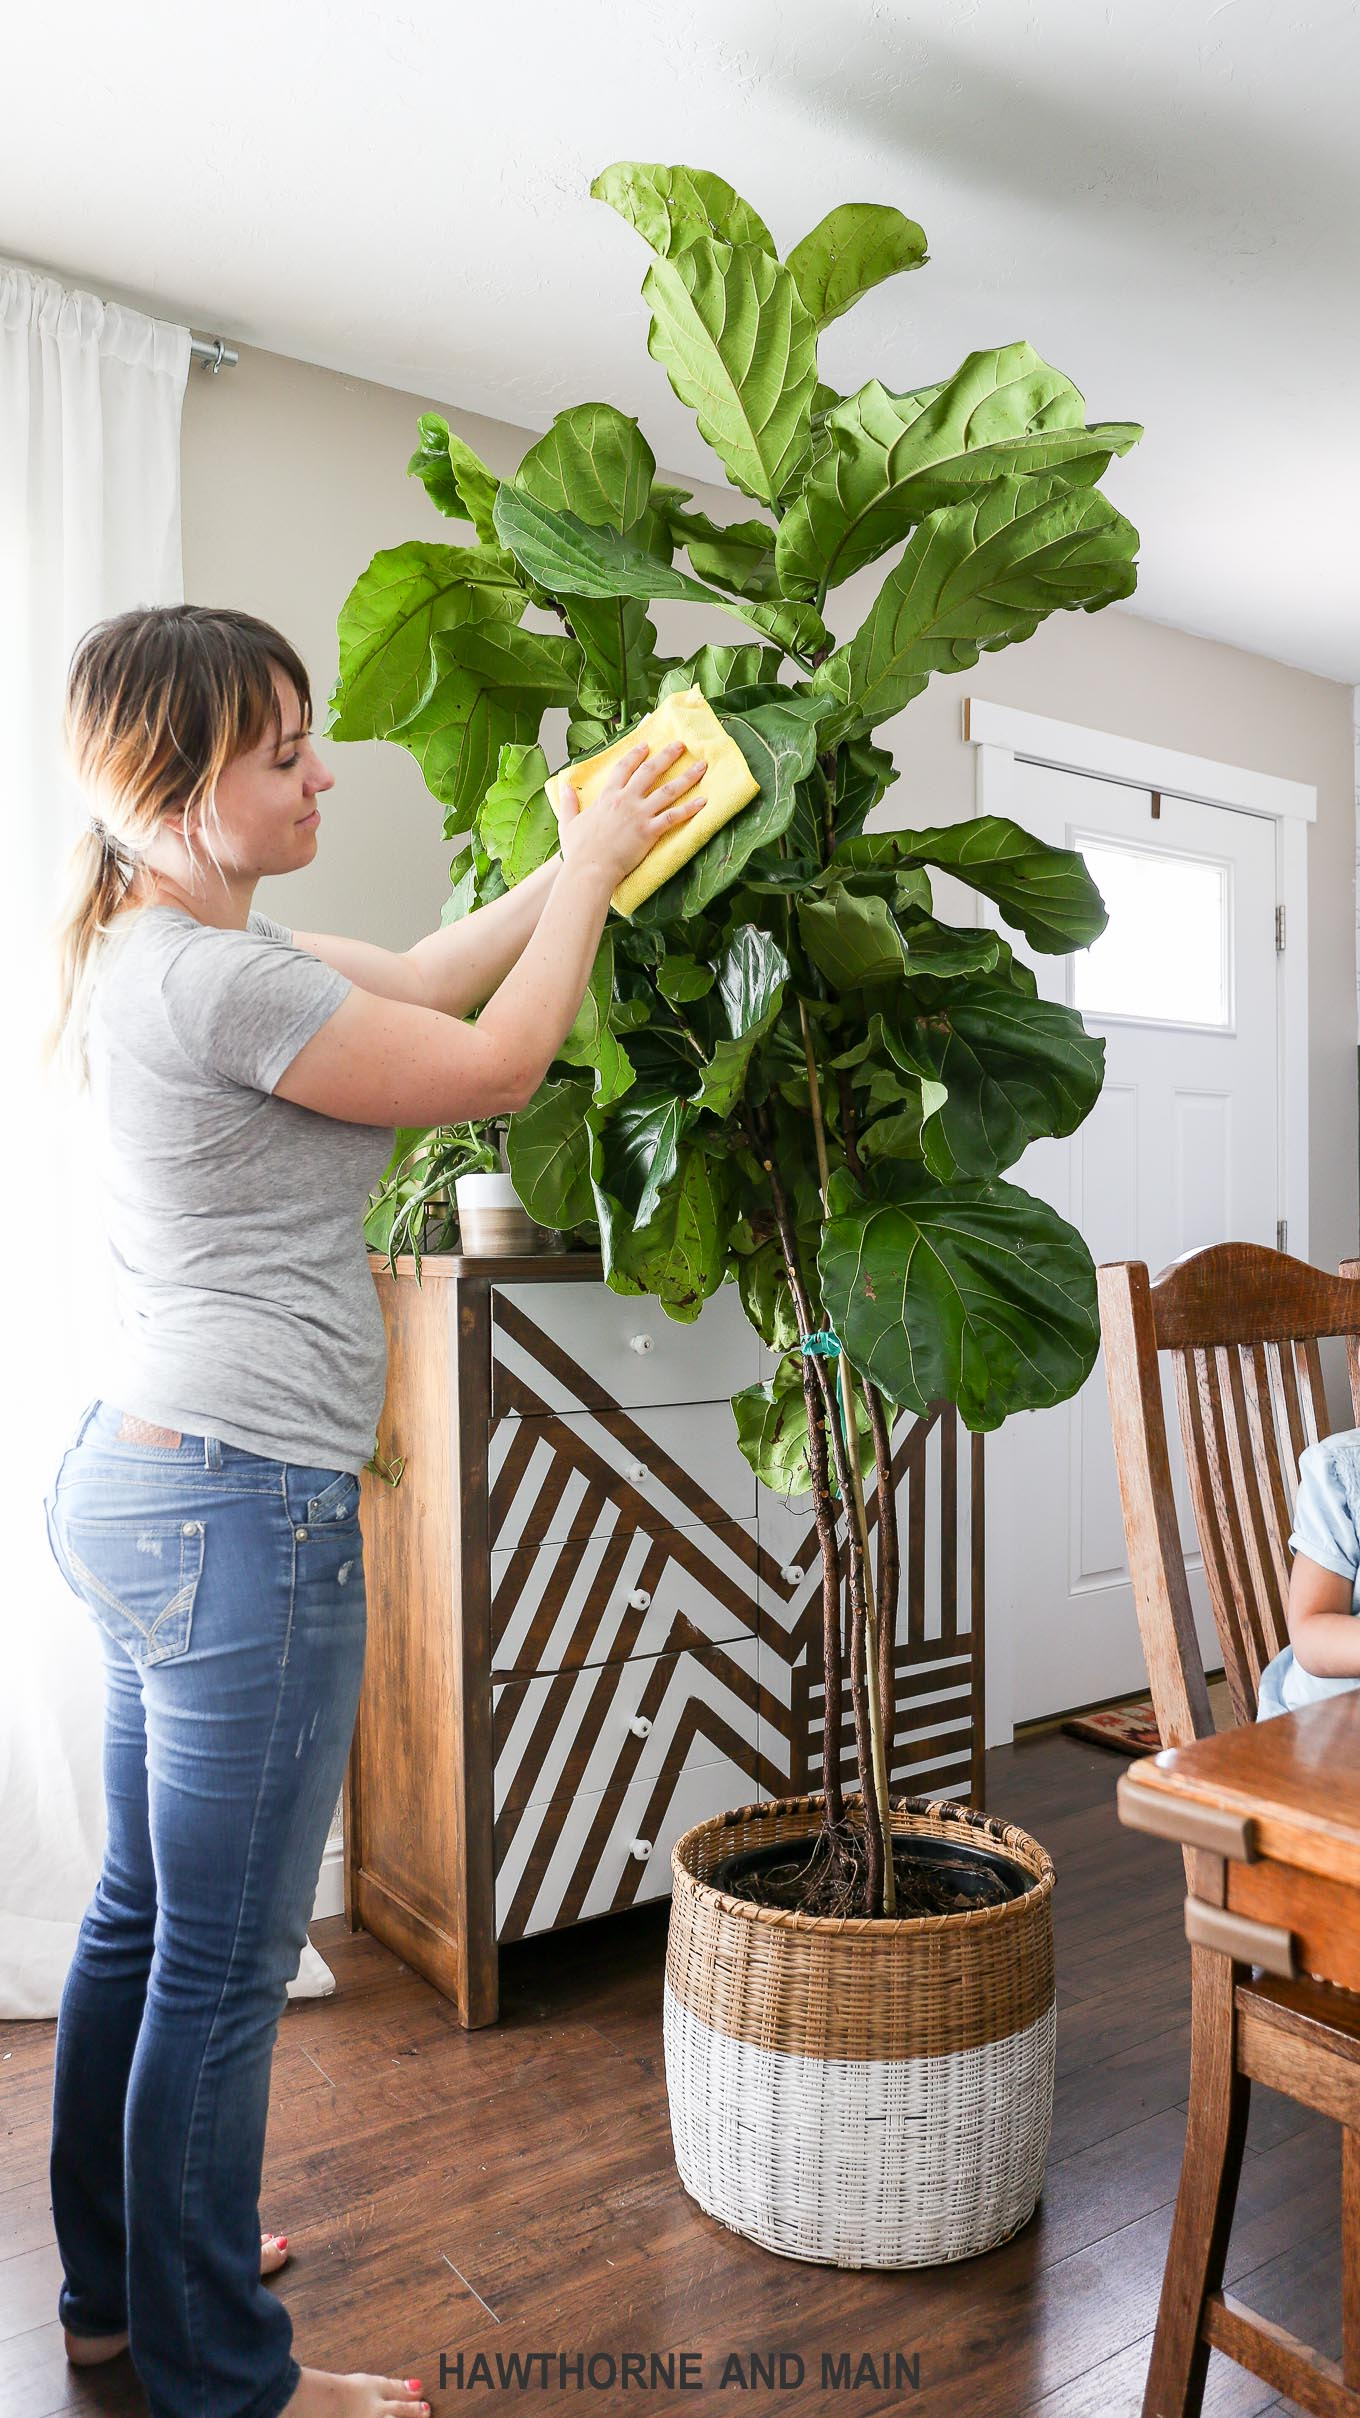 wipe leaves with a clean cotton cloth - Fiddle Leaf Fig Tree